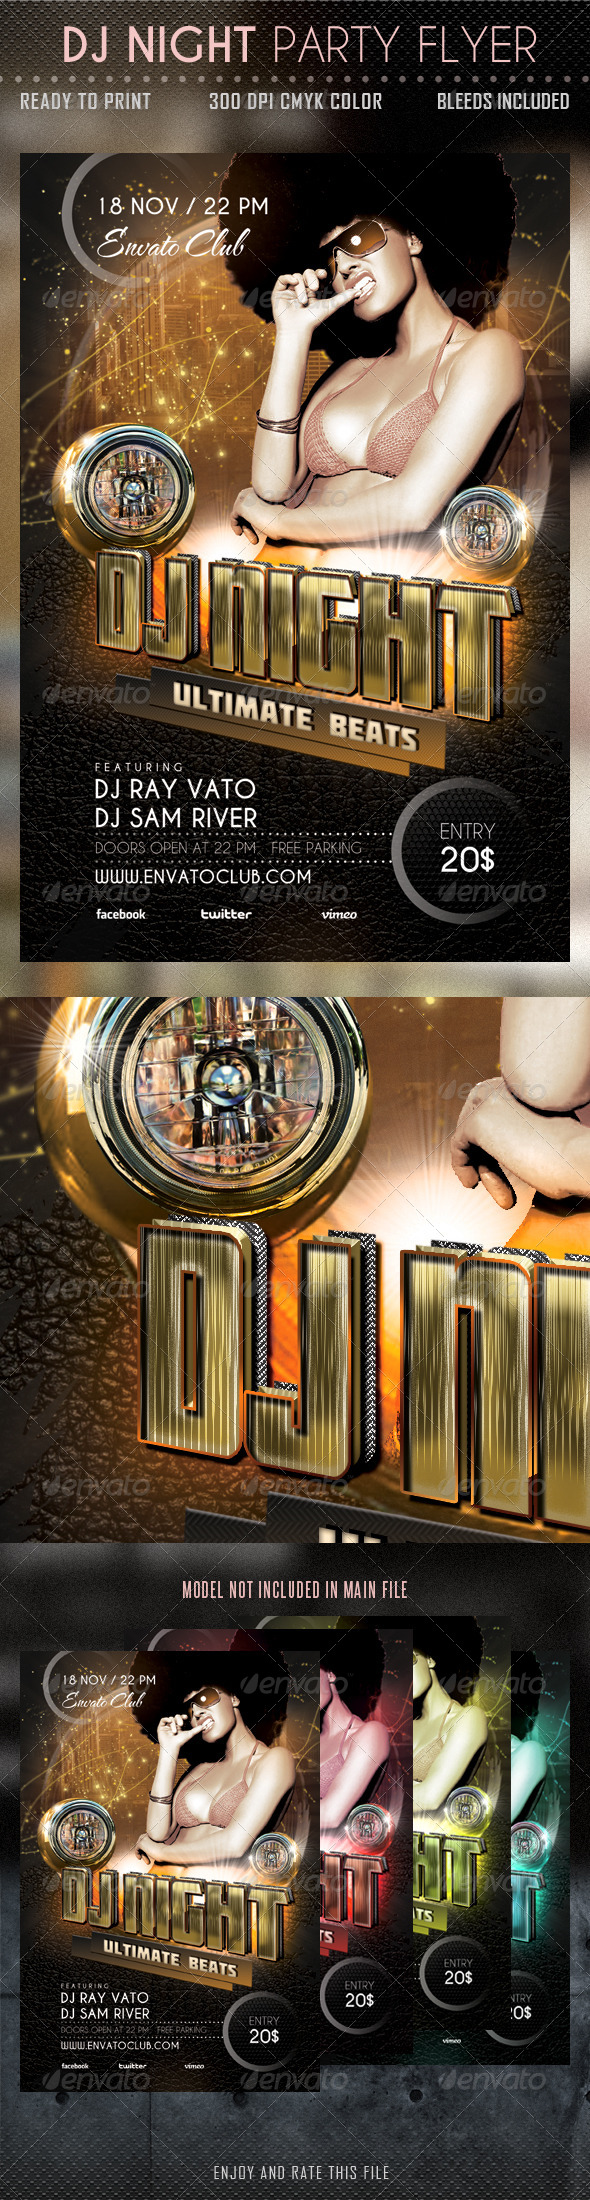 GraphicRiver DJ Night Party Flyer 5744436